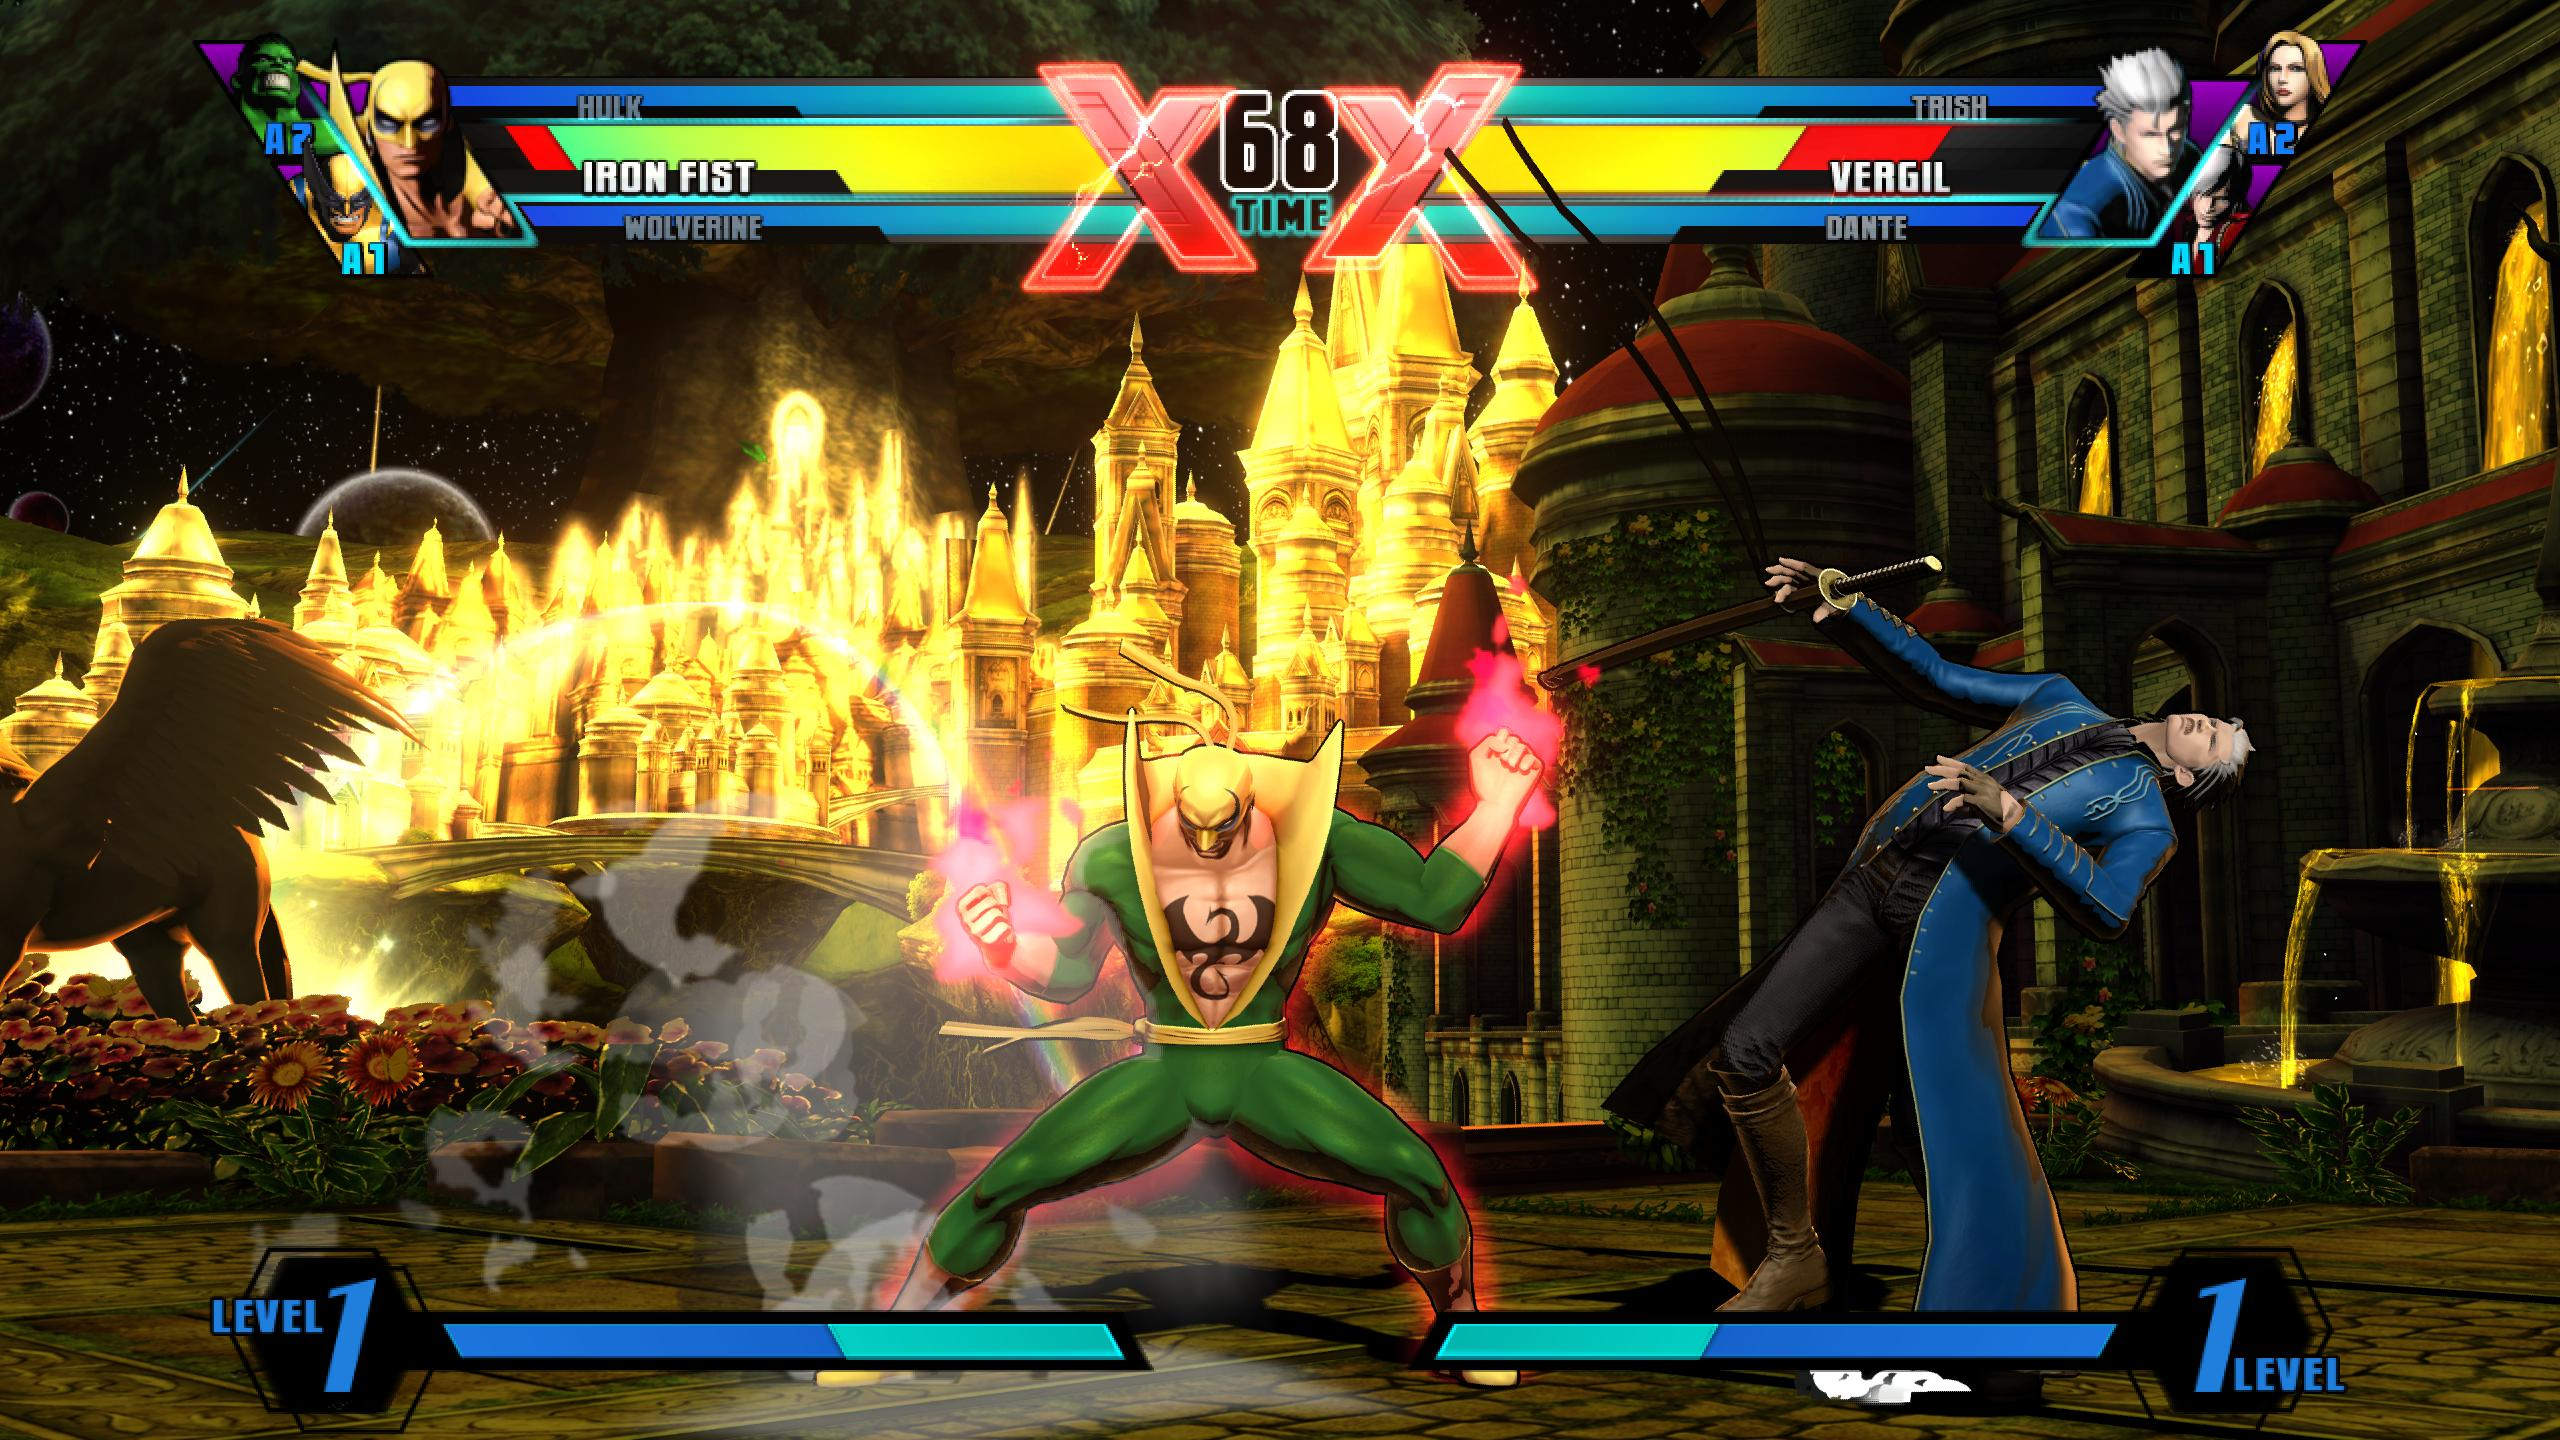 Vergil dans Ultimate Marvel vs. Capcom 3 6150560367_8dcb2d6fa1_o